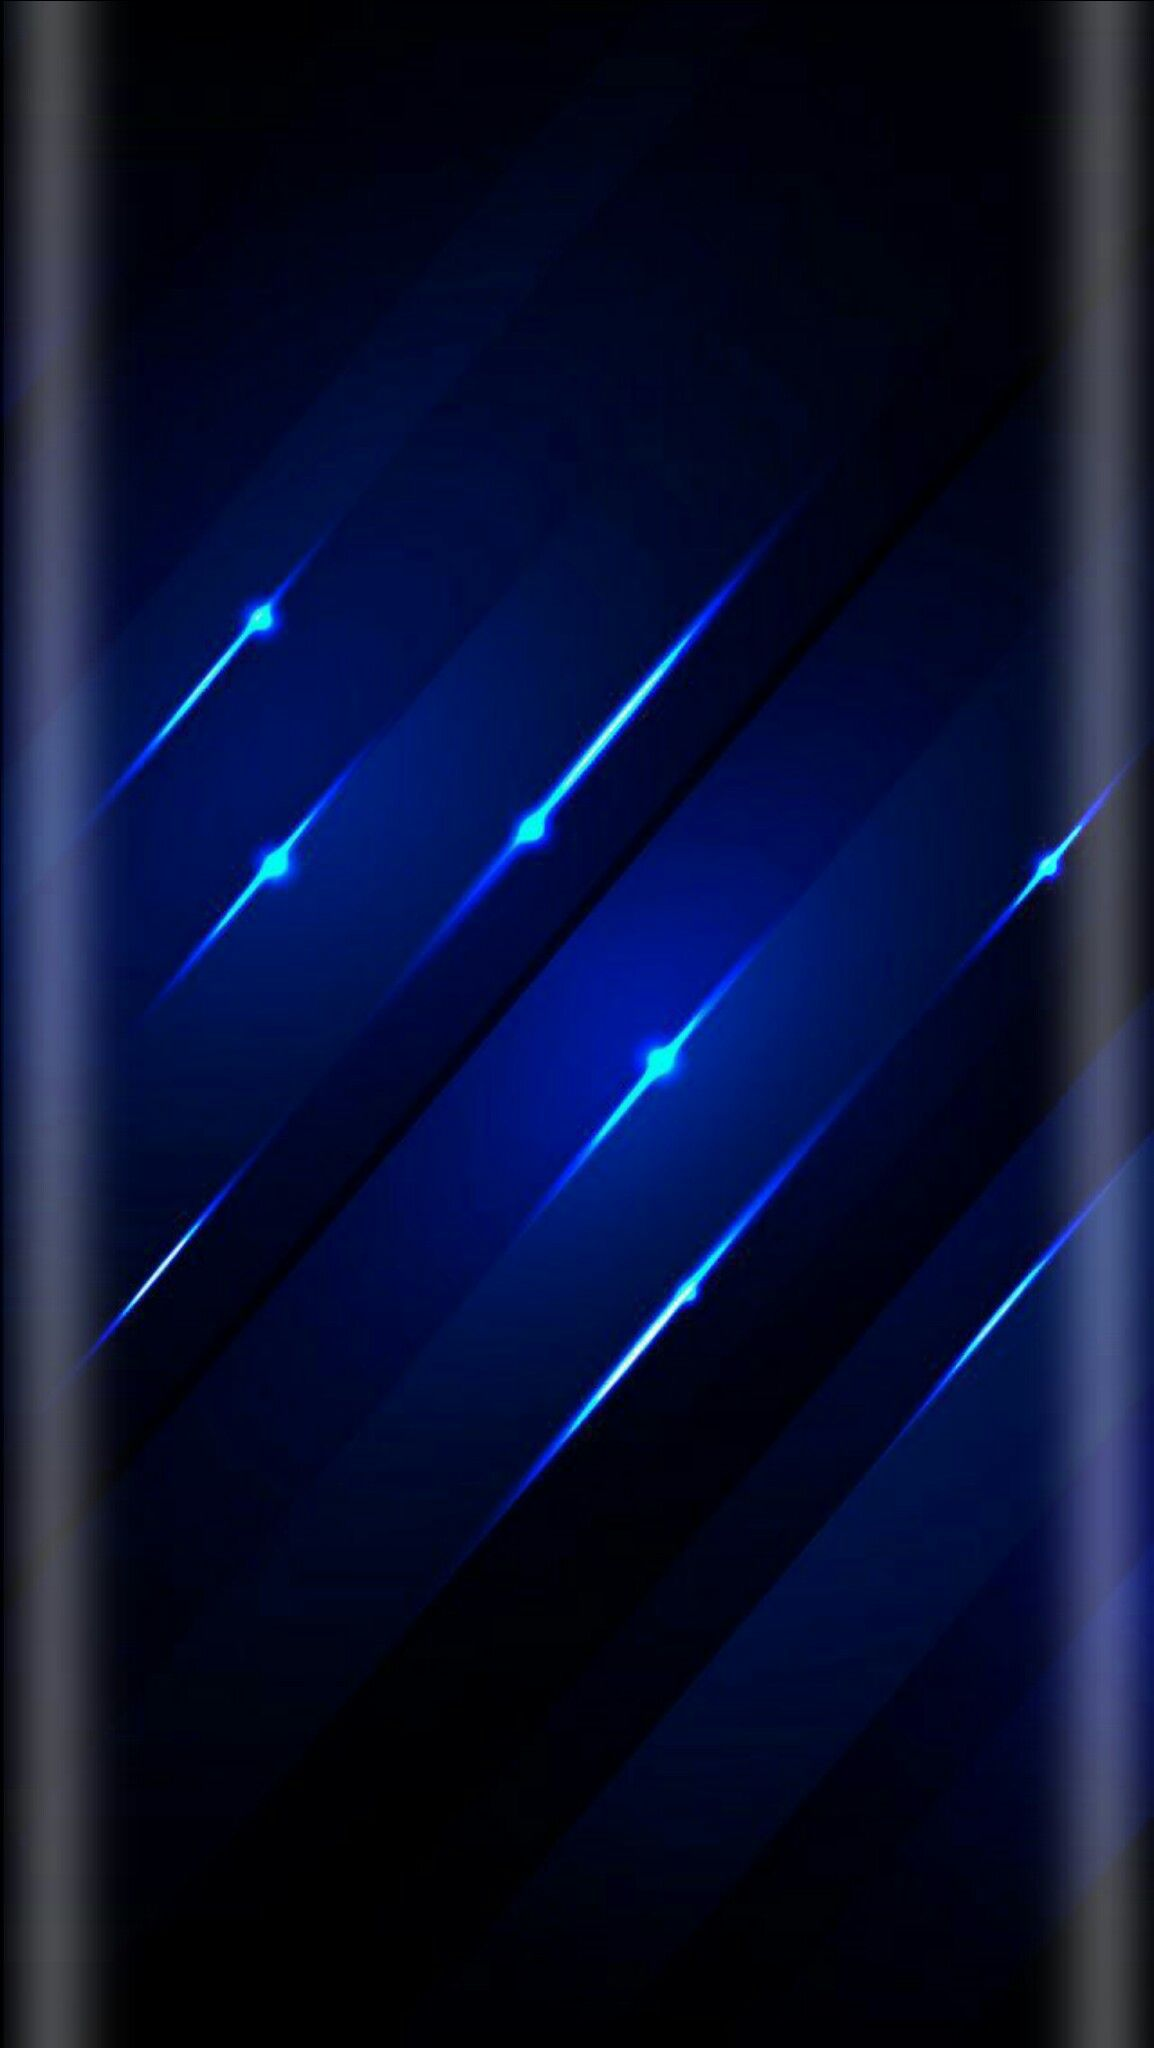 Diagonal Blue Strobe Lights Wallpaper Phone wallpaper